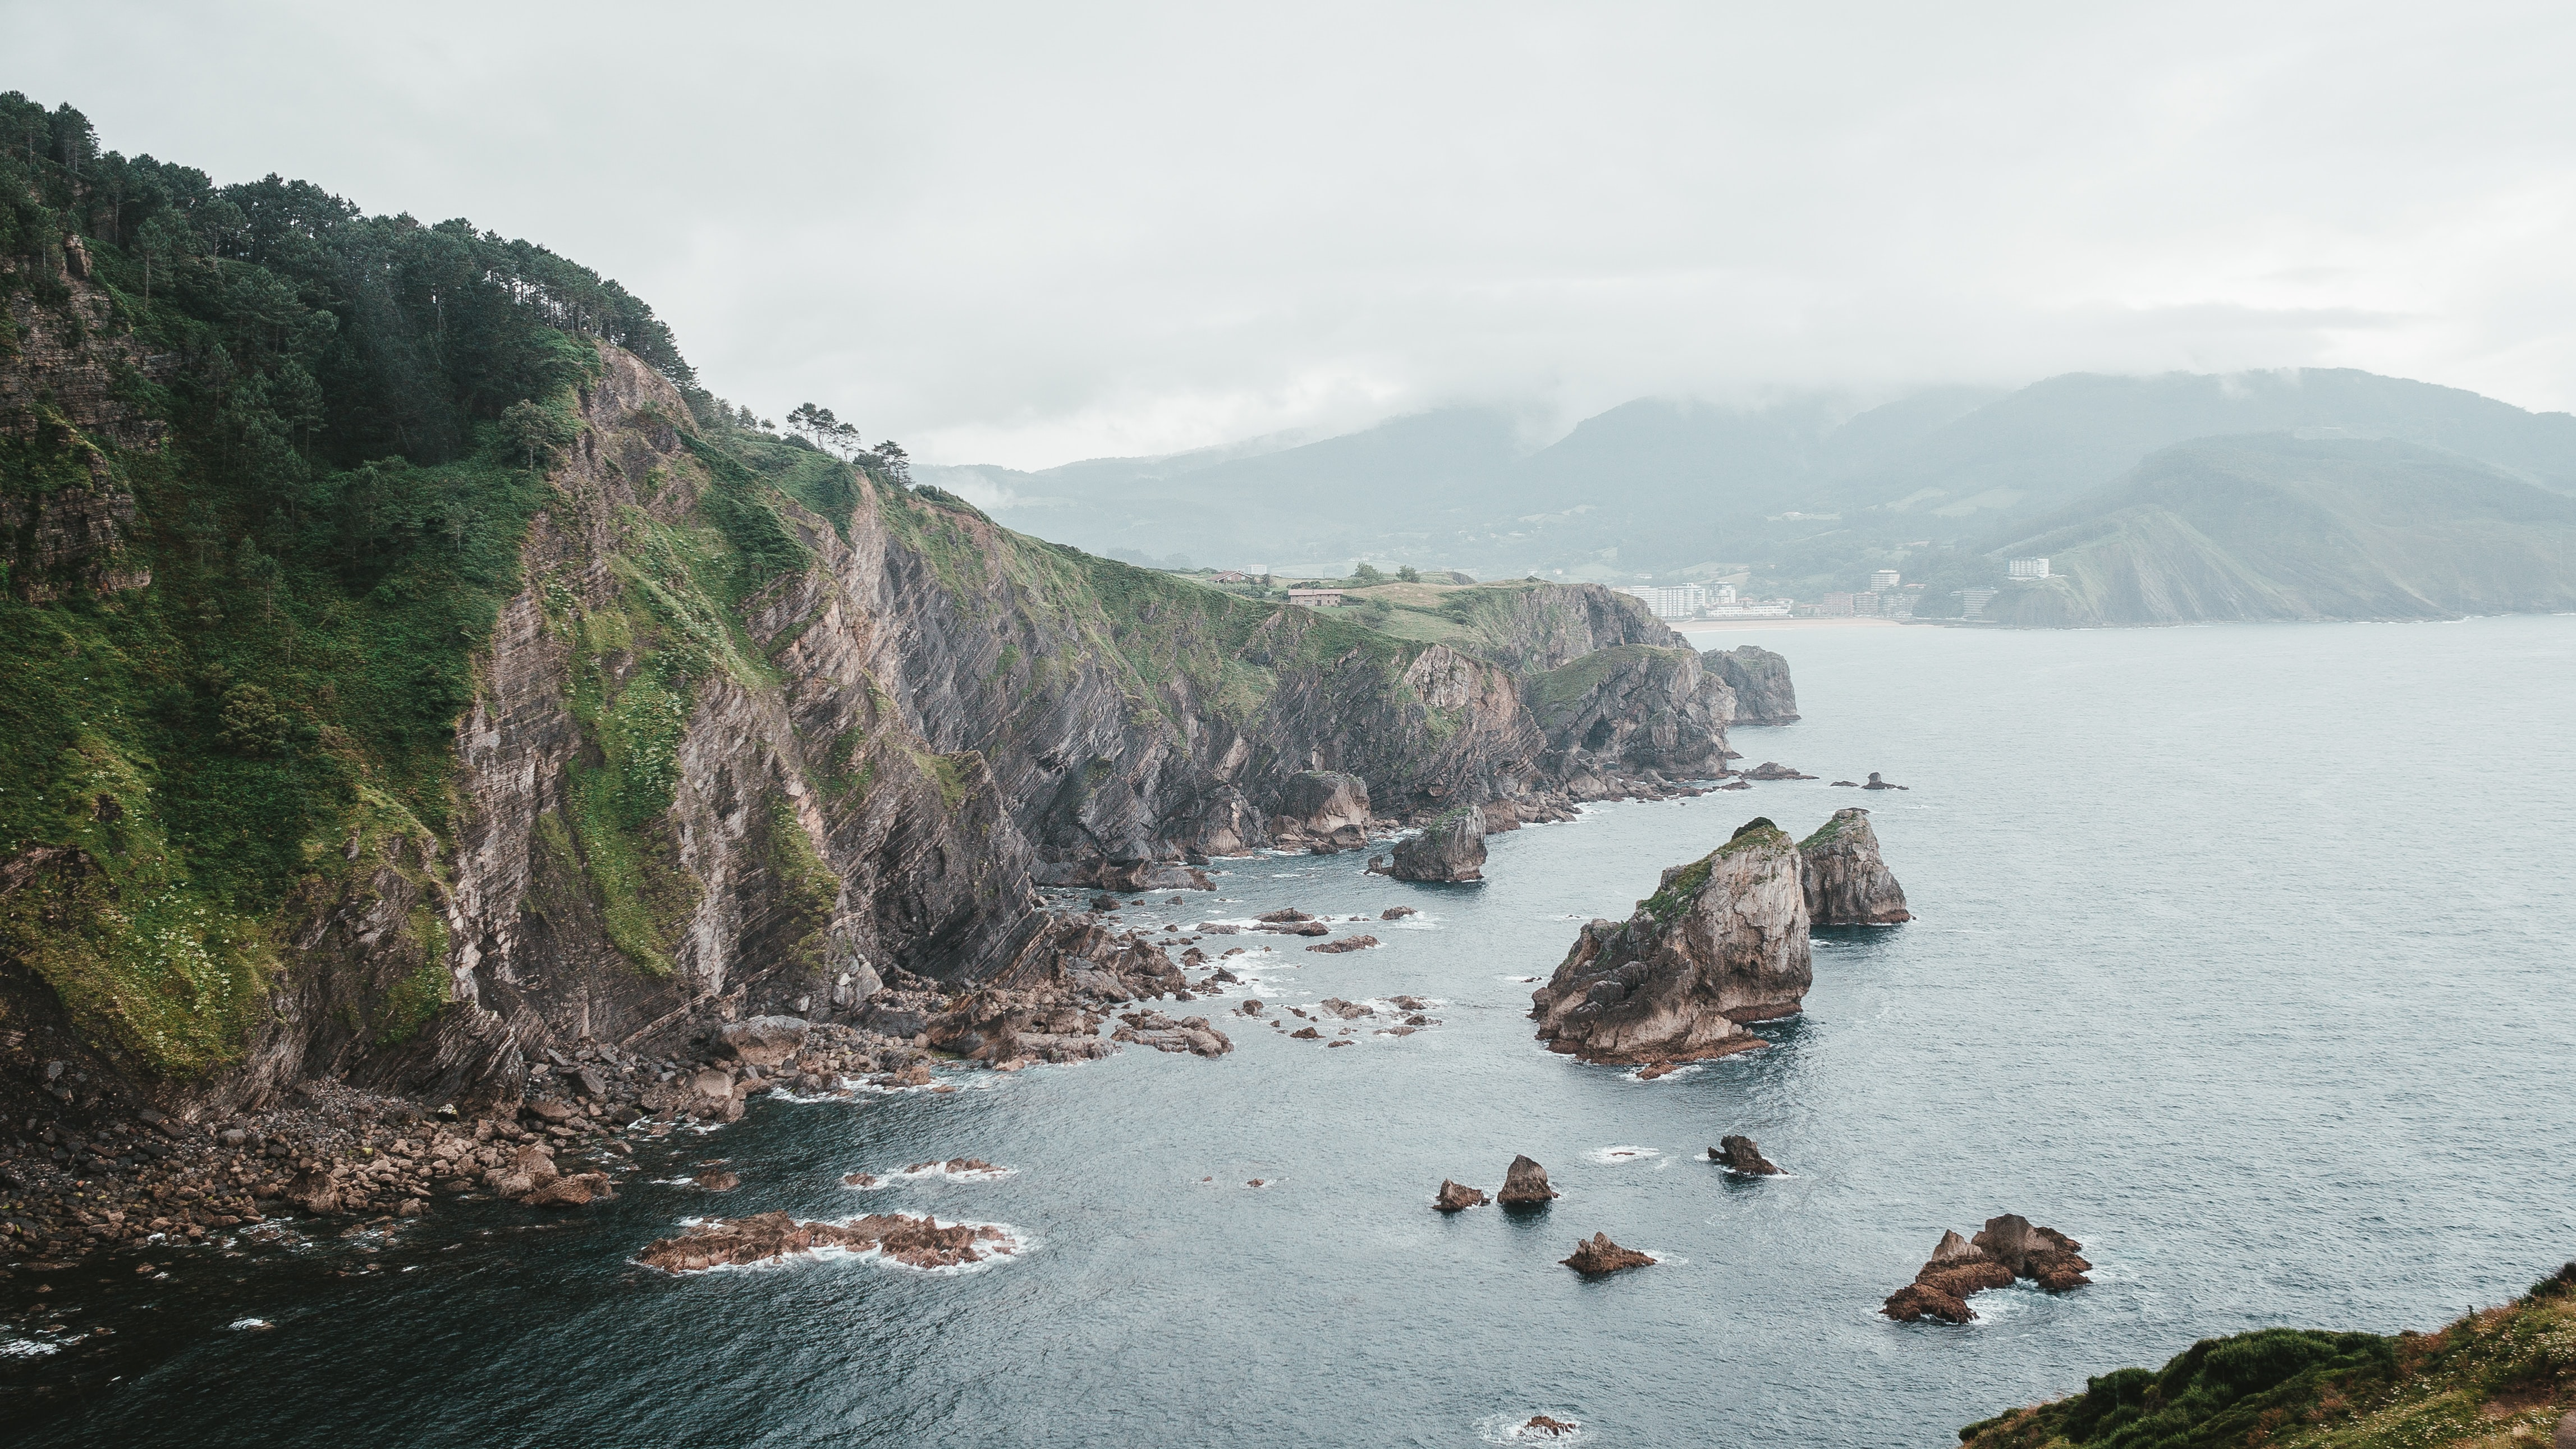 panoramic photography of rock formation near body of water